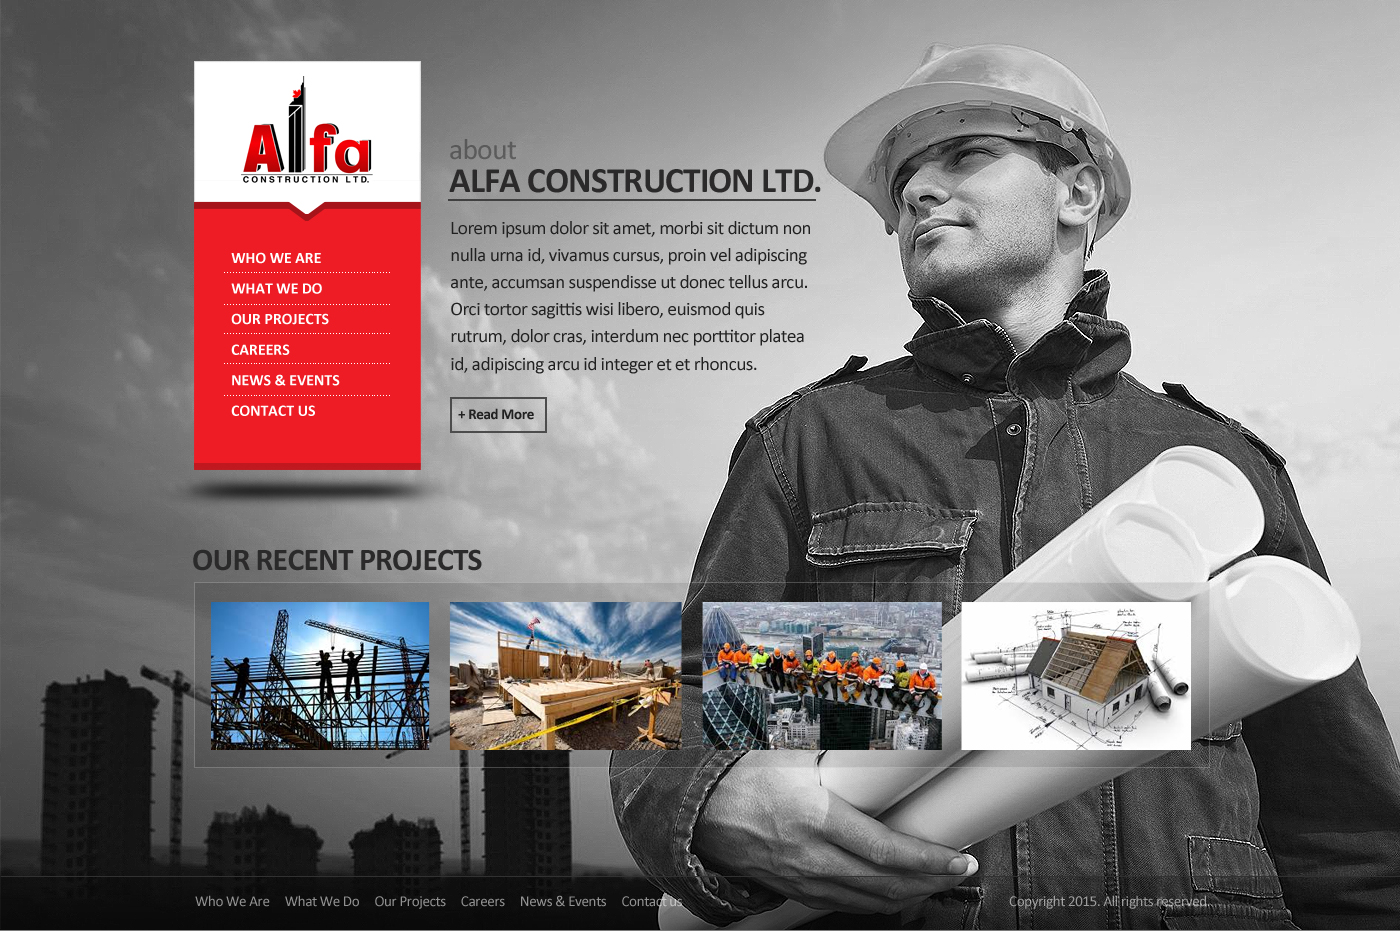 Web Page Design by webexprtz - Entry No. 5 in the Web Page Design Contest Unique Web Page Design Wanted for Alfa Construction Ltd..